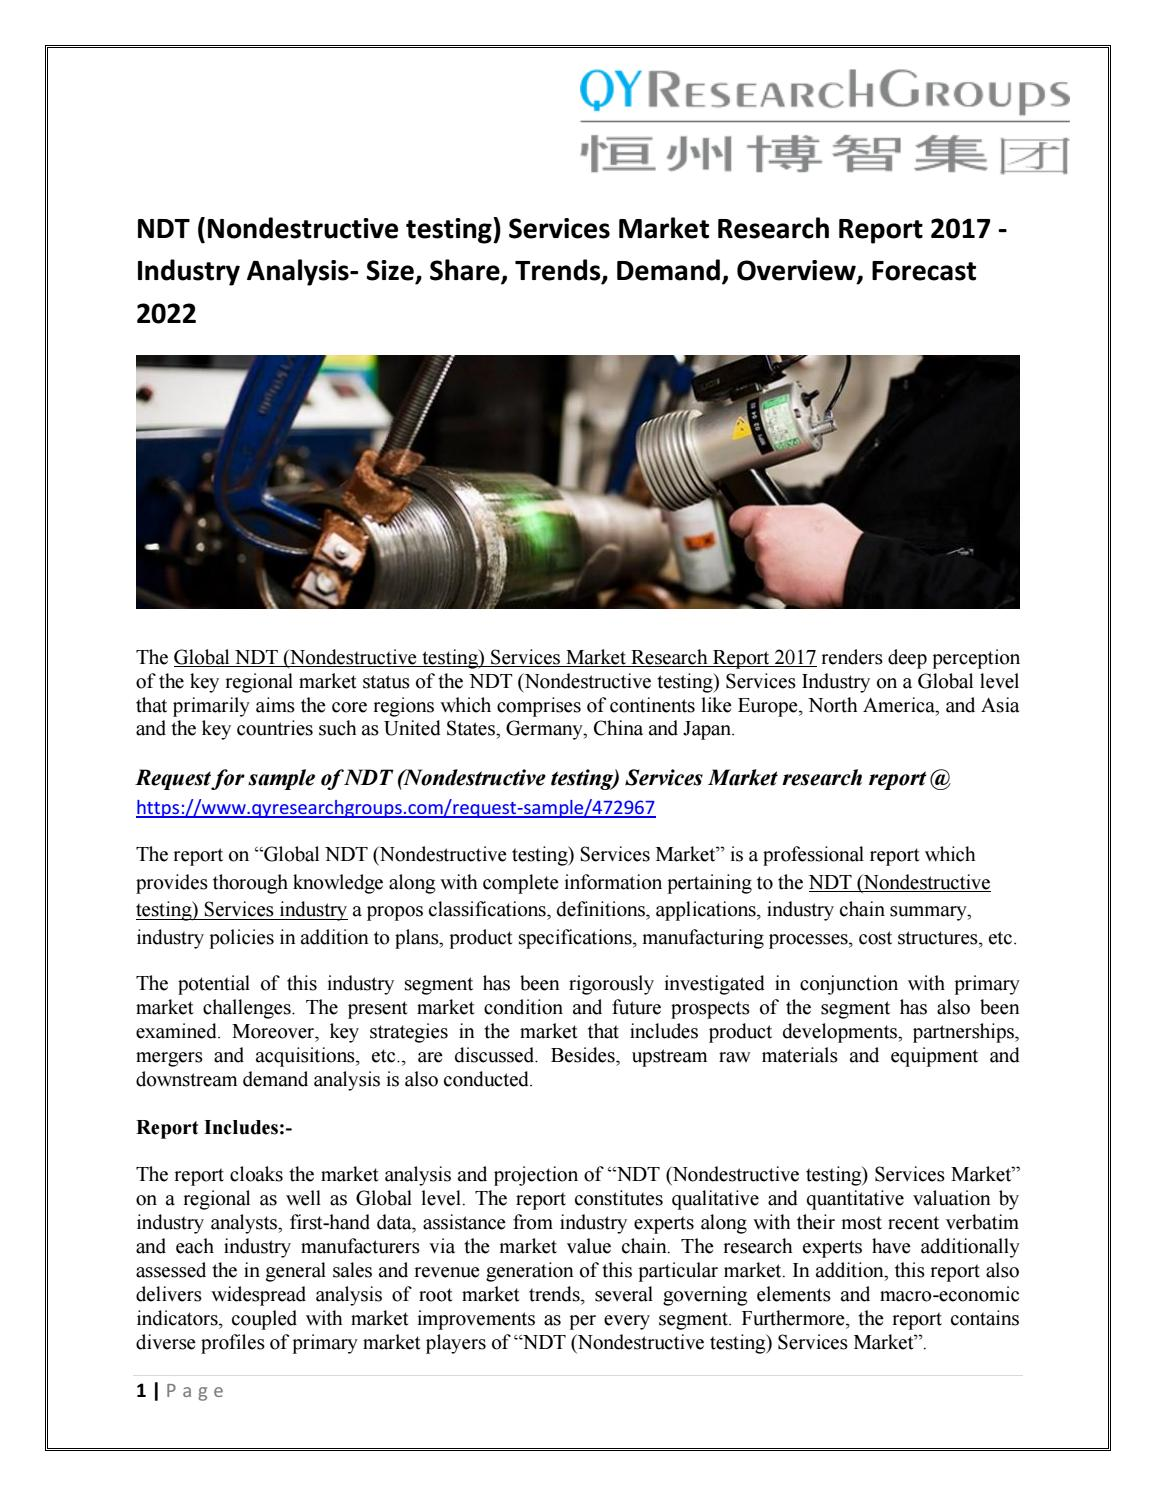 jsb market research non destructive testing Home uncategorized non-destructive testing and inspection sales market analysis and professional outlook 2017 to uncategorized non-destructive testing and inspection sales market analysis and professional outlook 2017 to 2022.